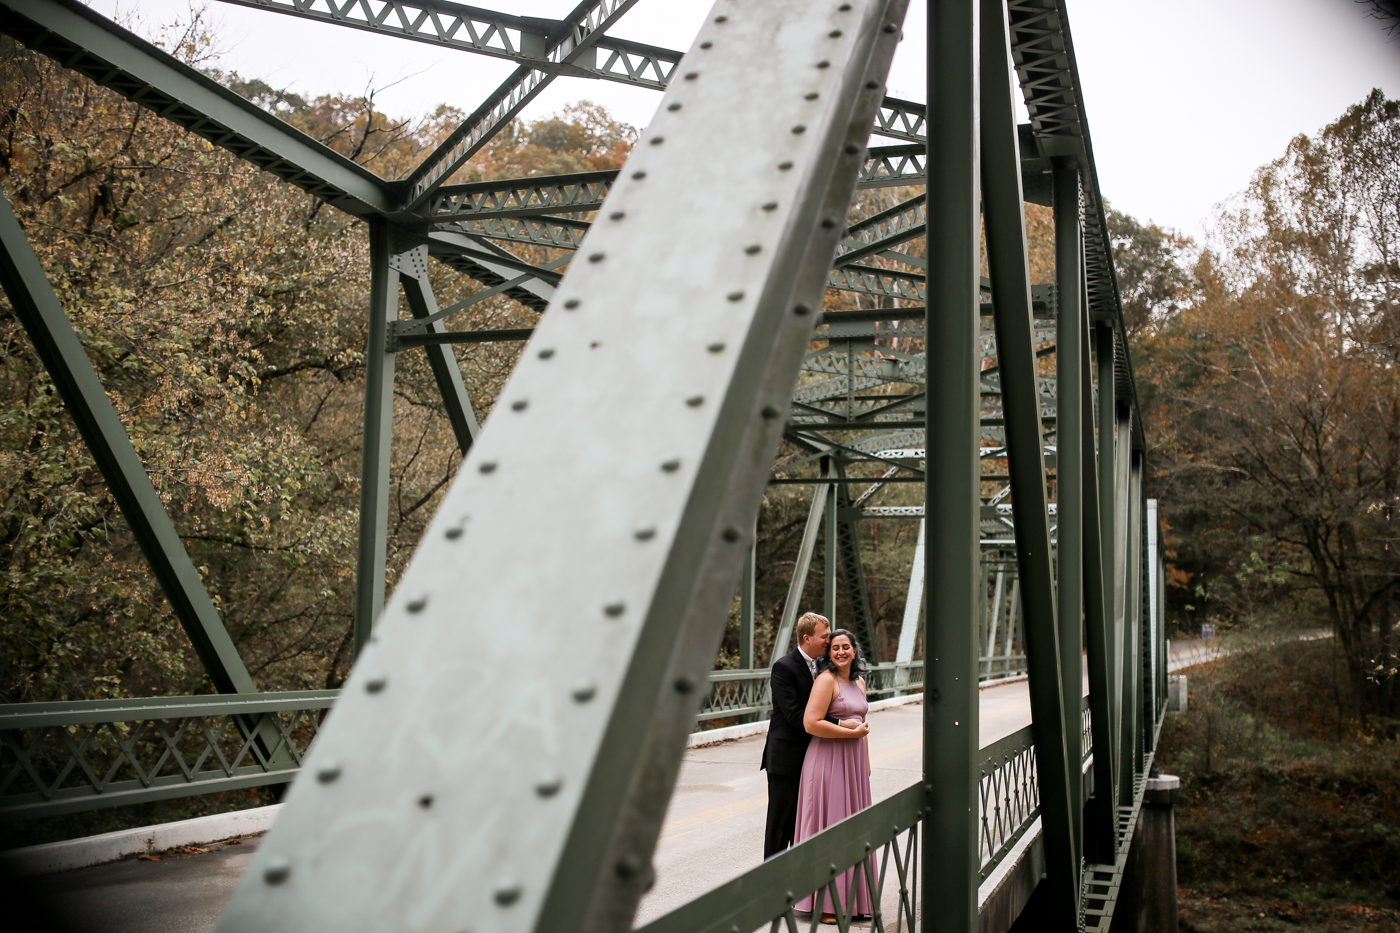 Red-River-Gorge-Nada-Tunnel-Kentucky-Engagement-Elopement-23.jpg